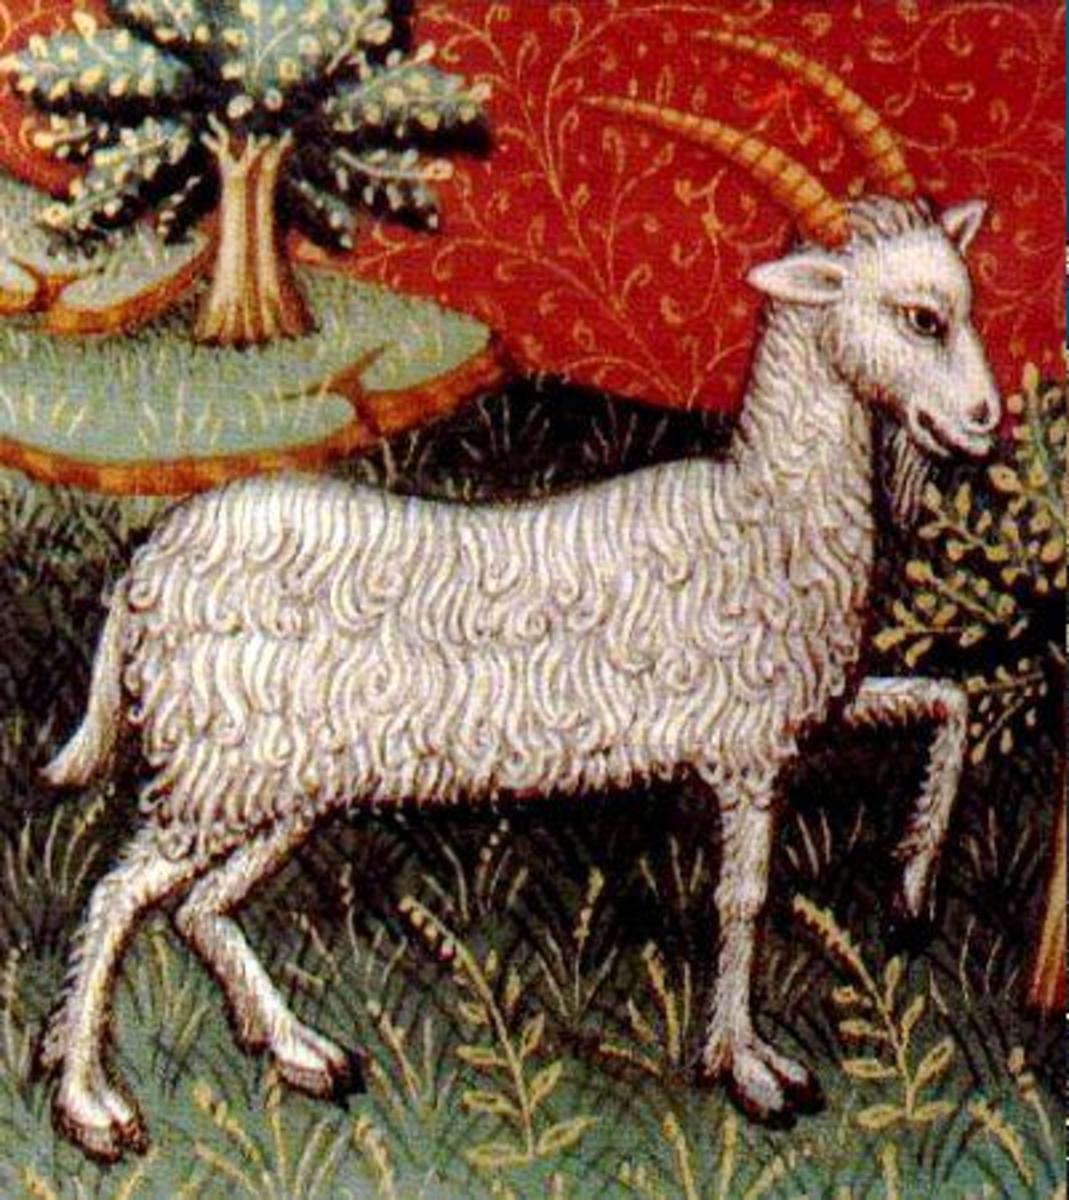 The Capricorn is symbolized by the Goat.  Capricorn is also an Earth sign with and practicality and dependability dominating the Goat's personality.